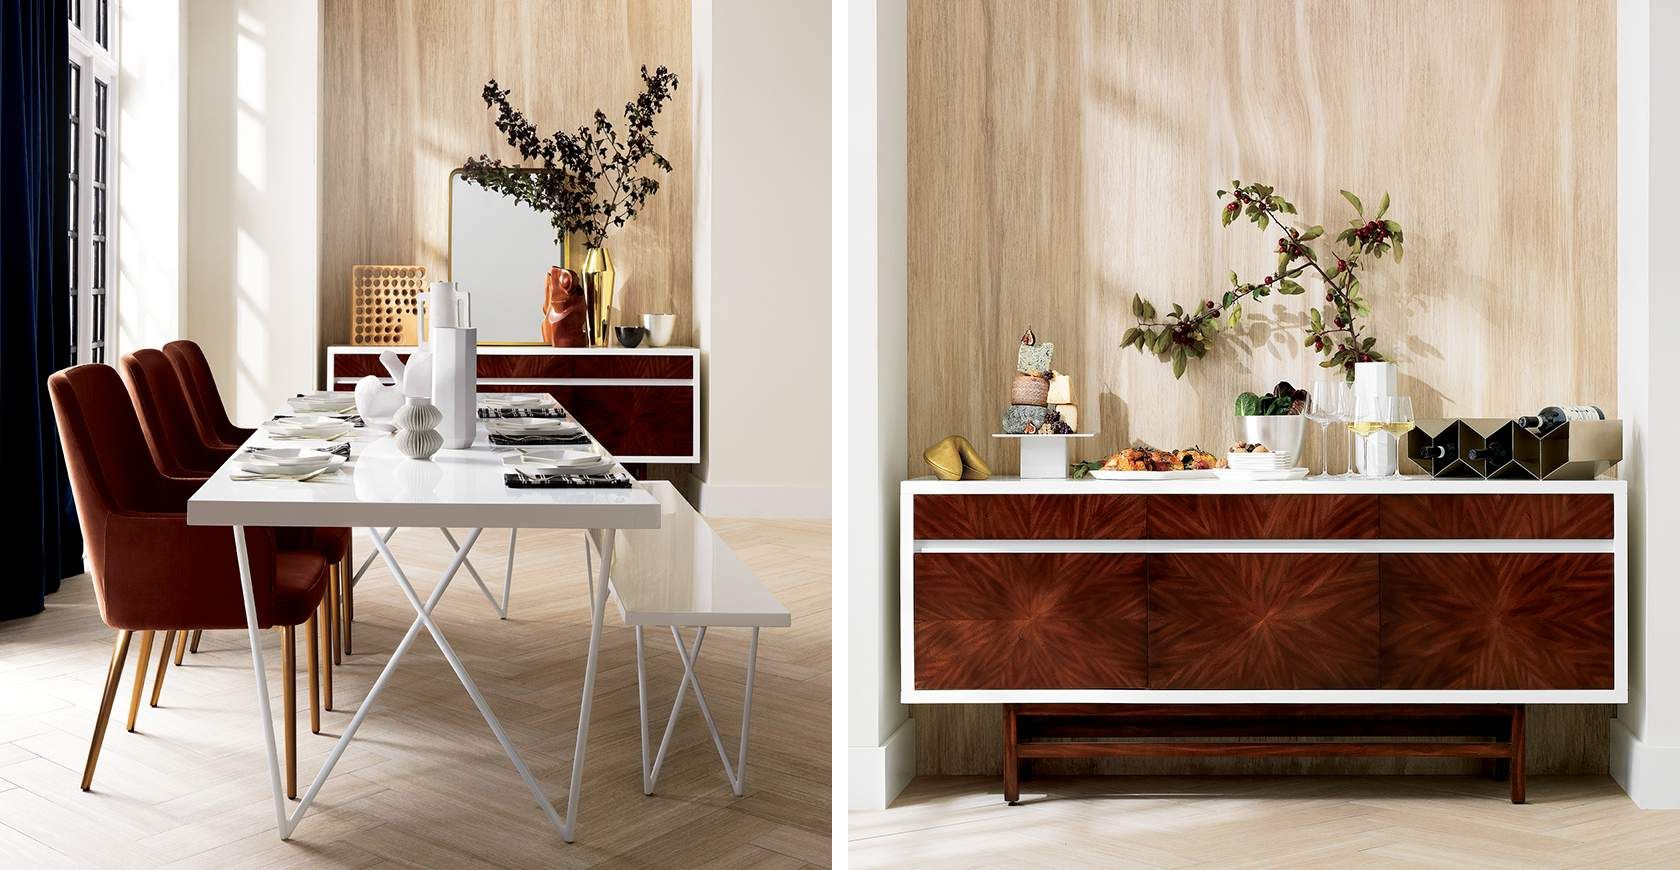 Modern furniture and home decor explore the latest looks from cb2 and discover modern furniture thats sleek chic functional and comfortable